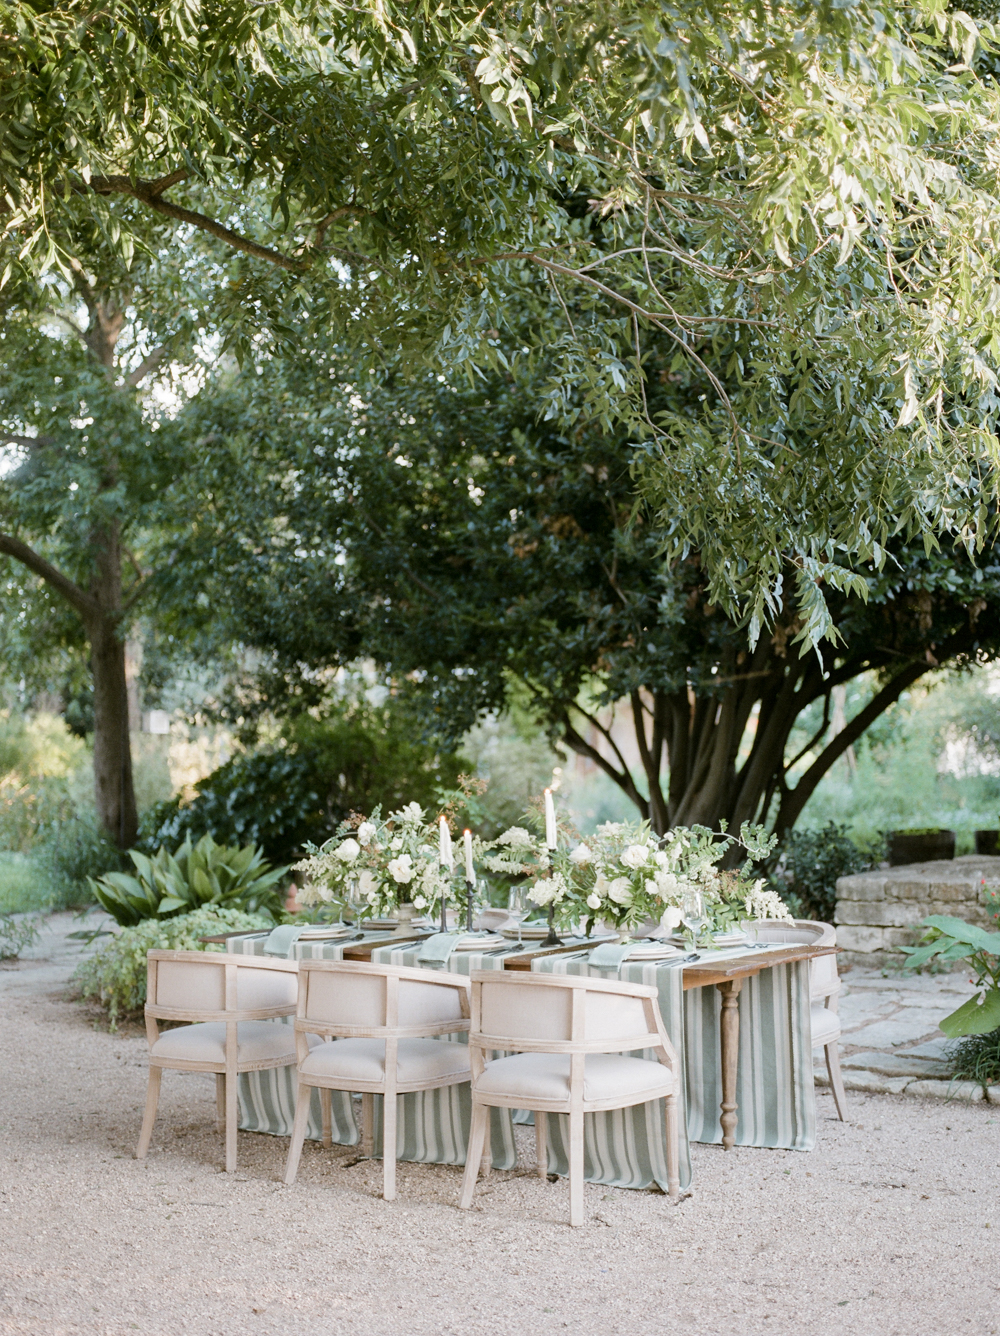 christine-gosch-barr-mansion-austin-wedding-venues-venue-simple-film-photographer-wedding-sparrow-alexandra-grecco-sprout-floals-feathers-and-frosting-classic-inspired-photography-mayhar-design18.jpg